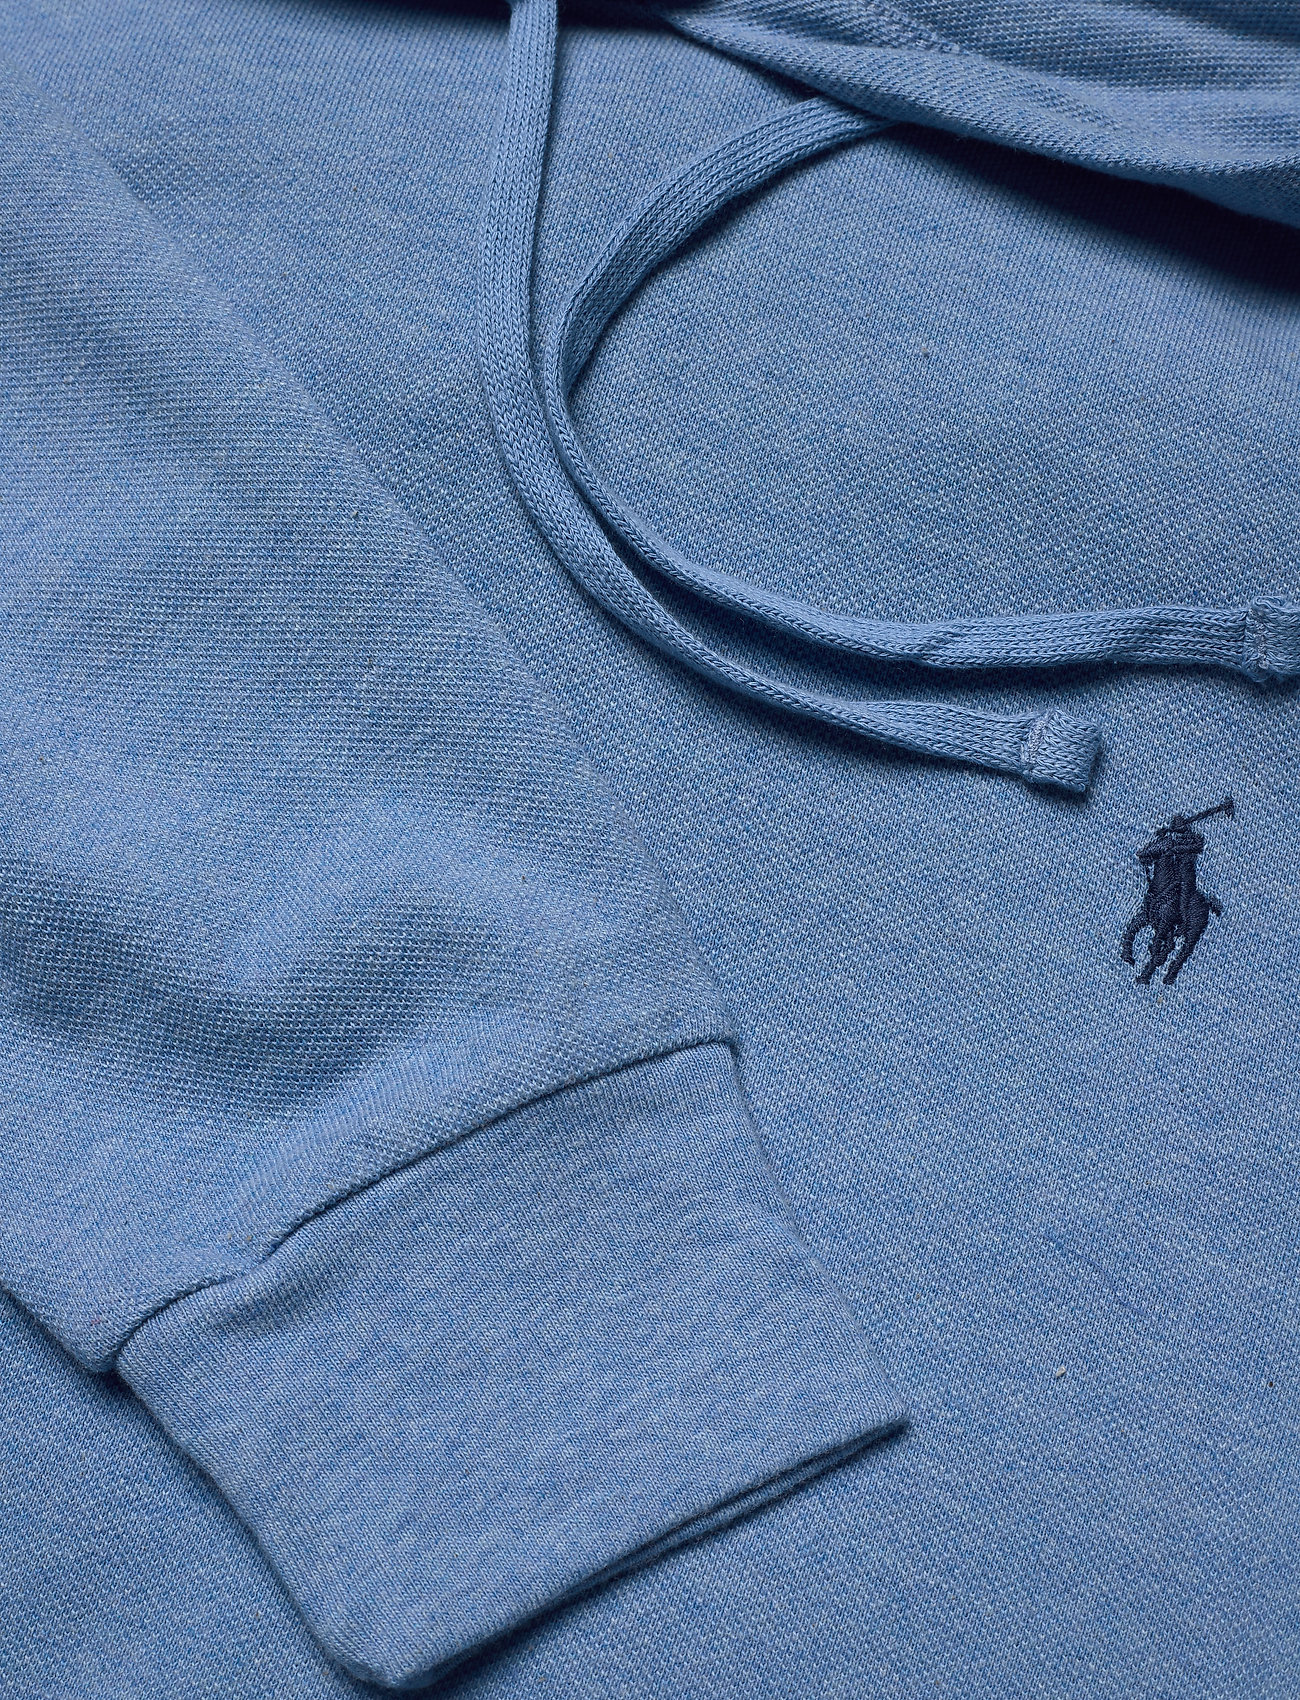 Cotton Mesh Hoodie (Soft Royal Heathe) (83.30 €) - Polo Ralph Lauren v2DcqVqP